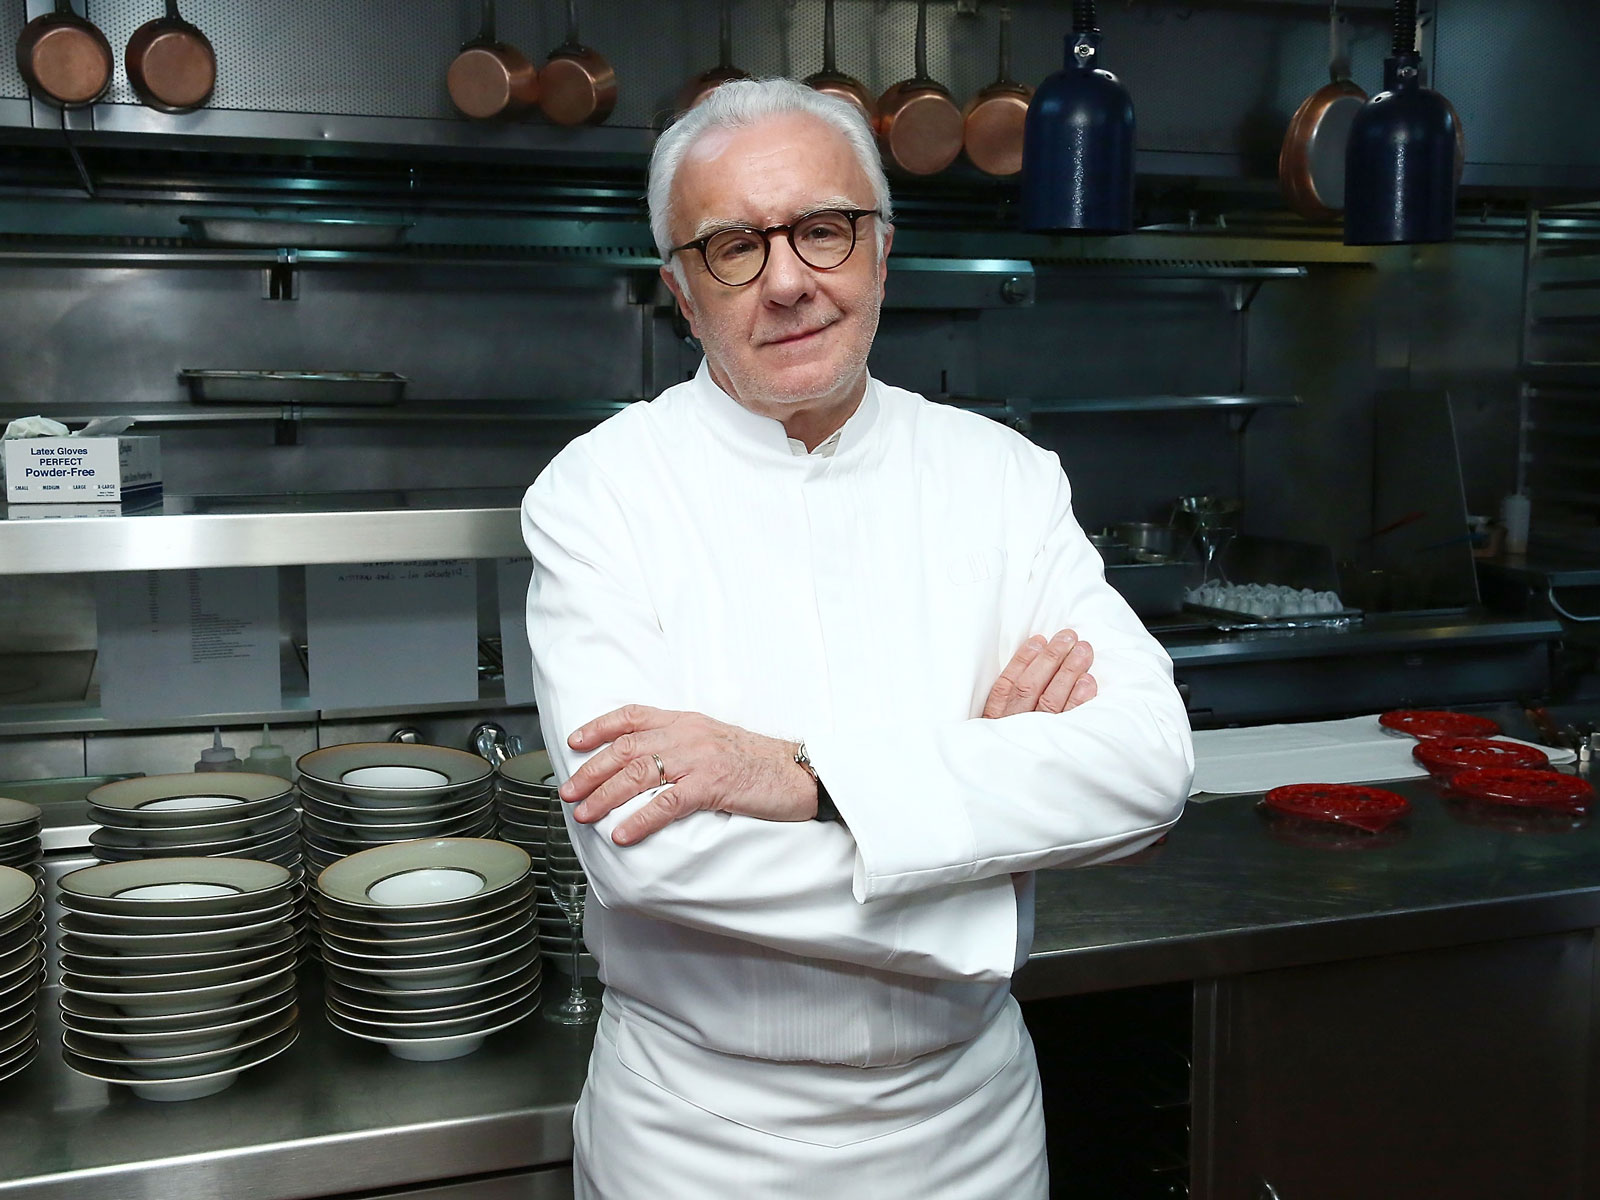 'The Quest of Alain Ducasse' Documentary Reveals the Inner Workings of One of the World's Best Chefs